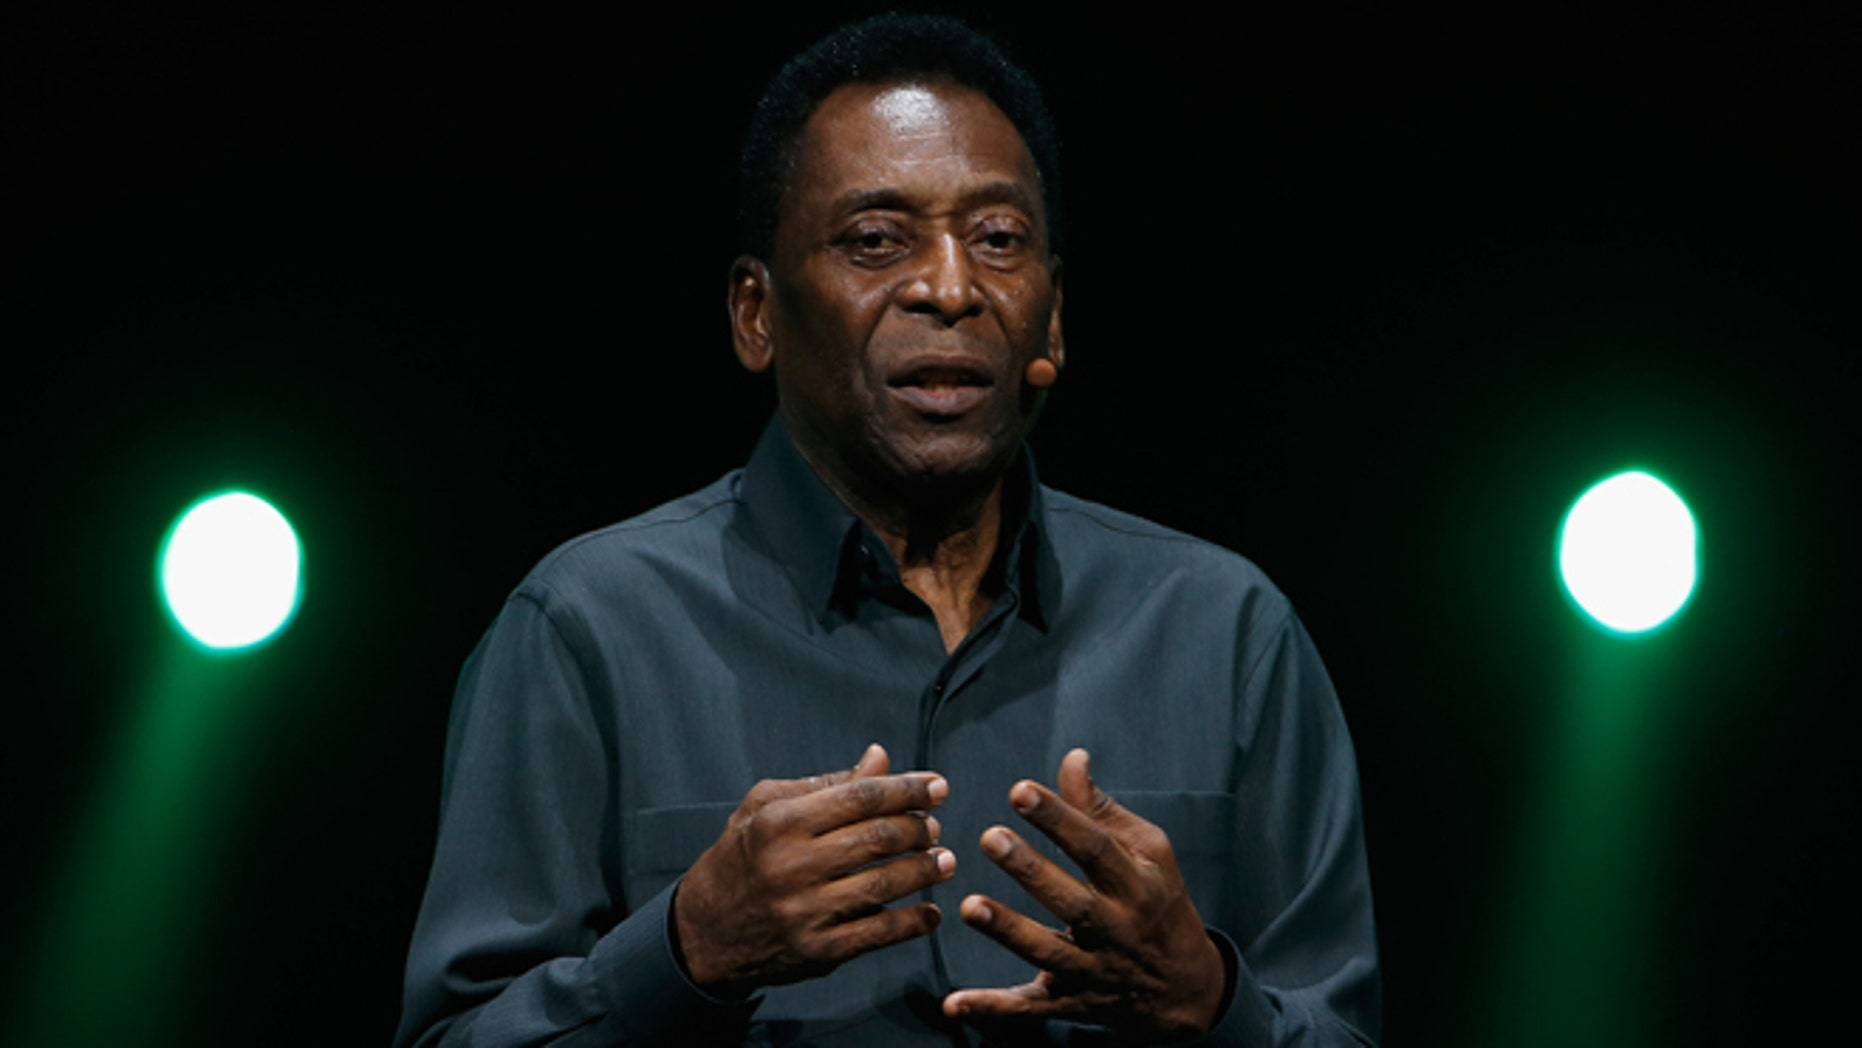 LOS ANGELES, CA - JUNE 15:  Retired Brazilian professional footballer, Pele speaks during the Electronic Arts E3 press conference at the LA Sports Arena on June 15, 2015 in Los Angeles, California. The EA press conference is held in conjunction with the annual Electronic Entertainment Expo (E3) which focuses on gaming systems and interactive entertainment, featuring introductions to new products and technologies.  (Photo by Christian Petersen/Getty Images)